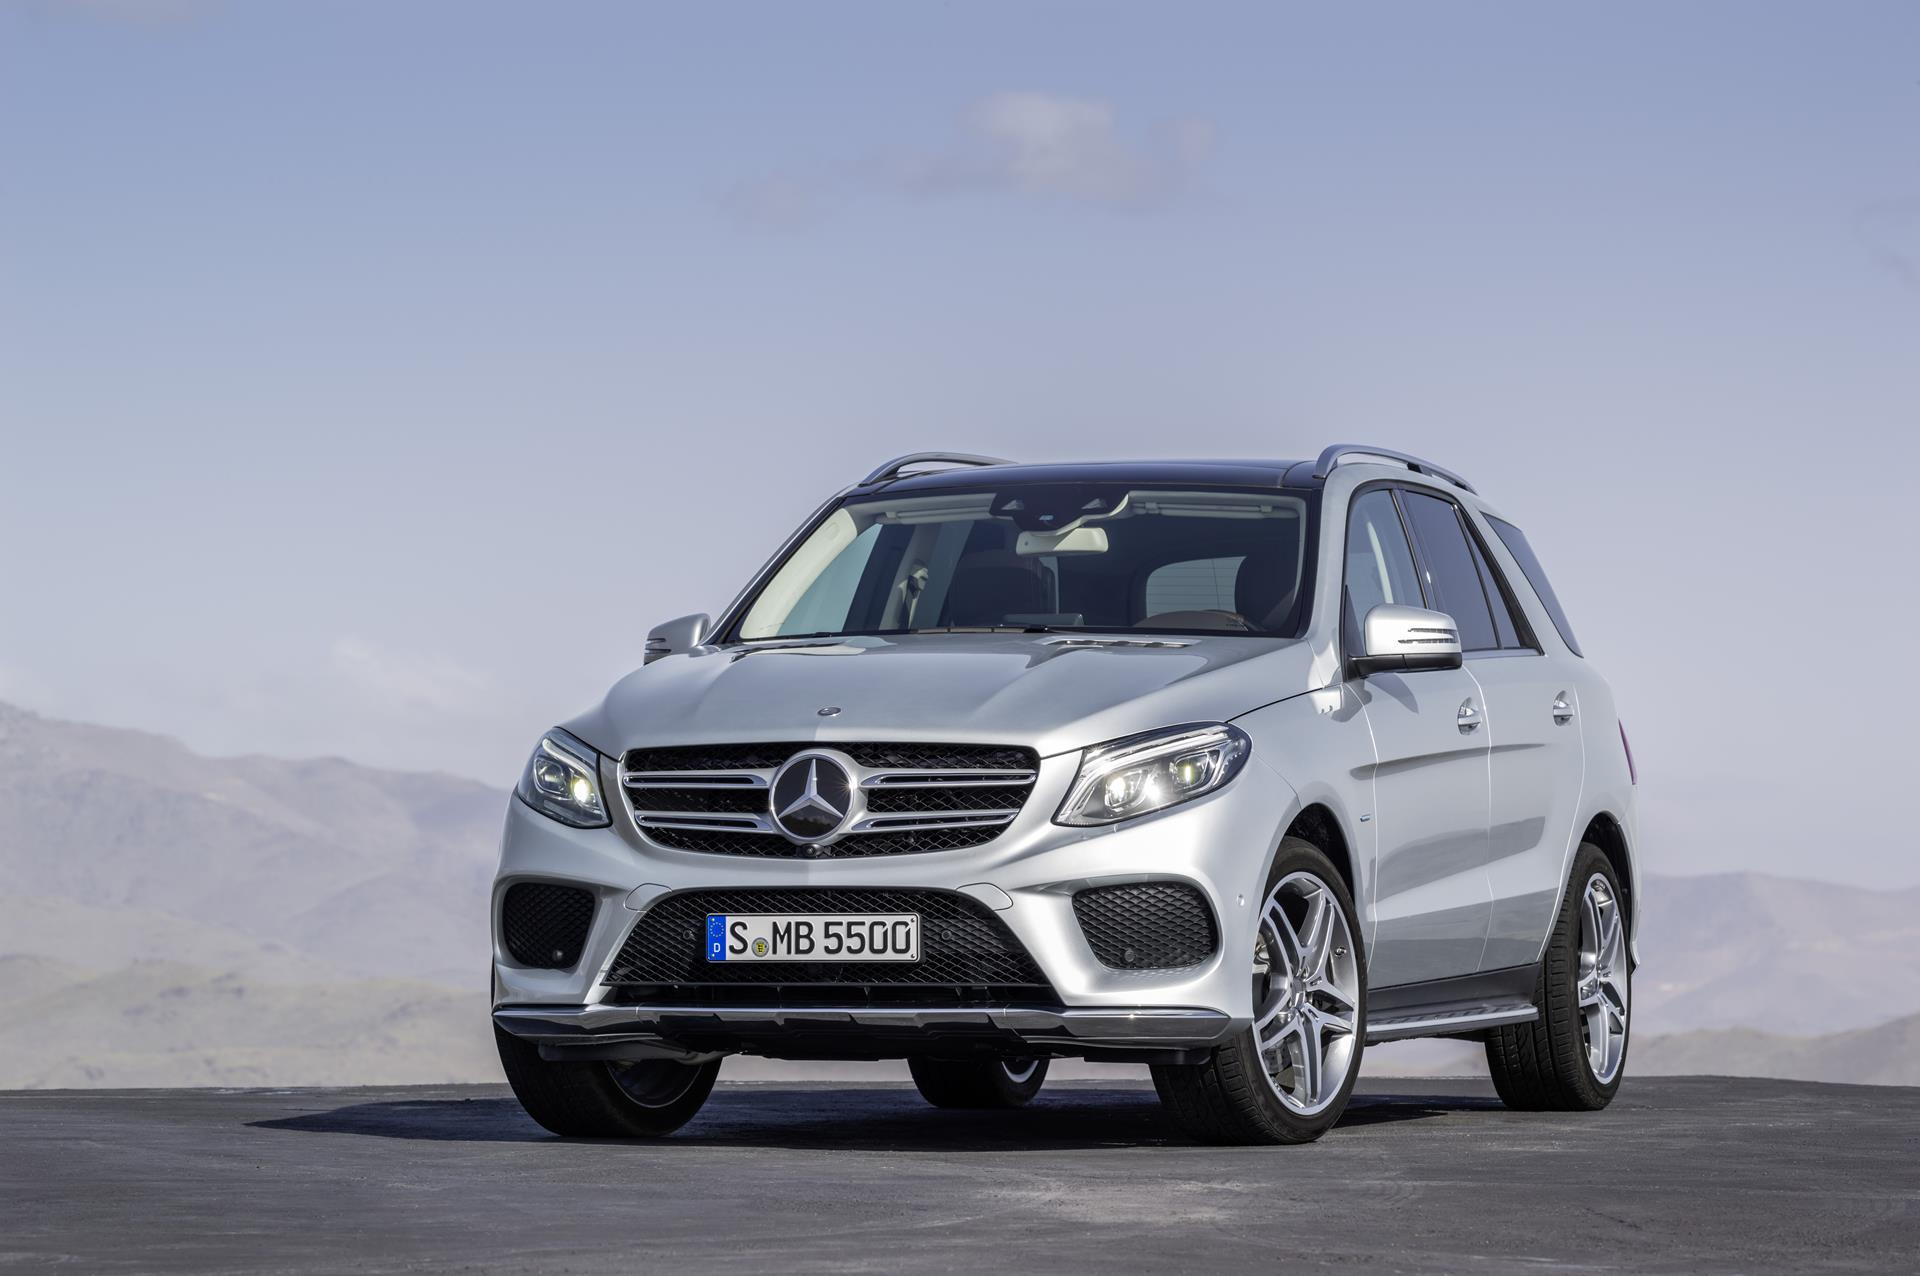 2016 mercedes benz gle. Cars Review. Best American Auto & Cars Review